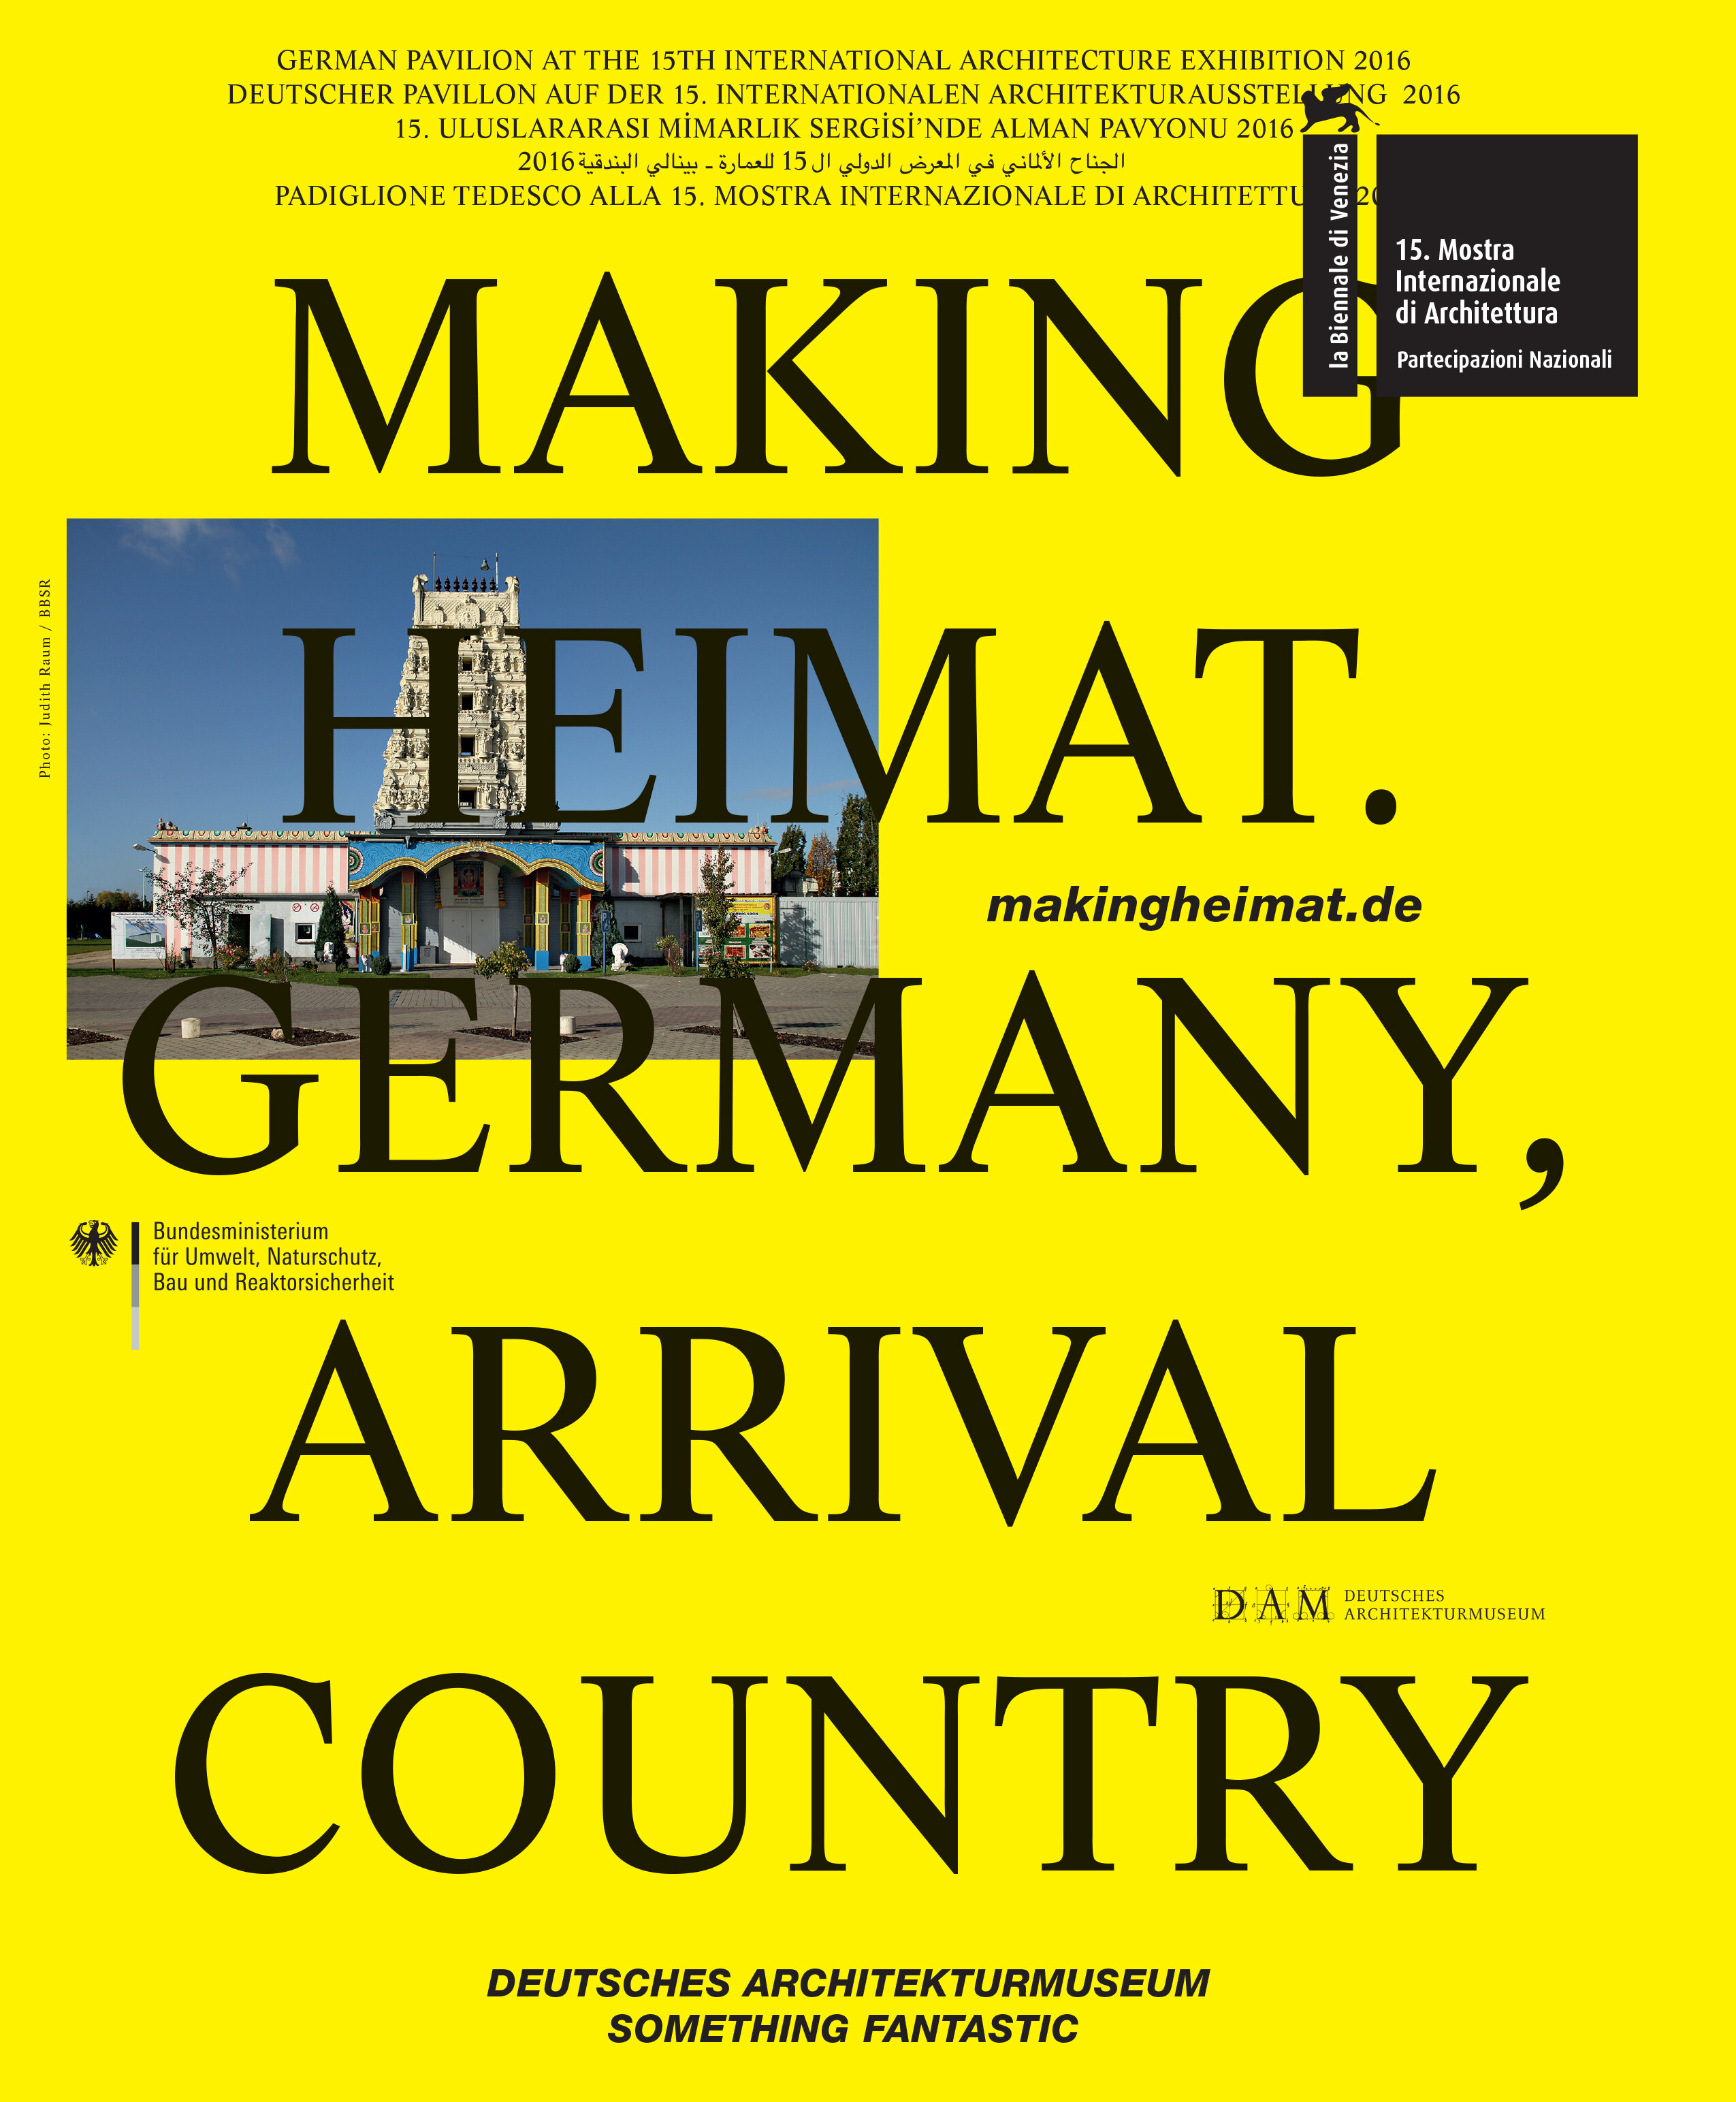 Making Heimat. Germany, Arrival Country, La Biennale di Venezia 2016